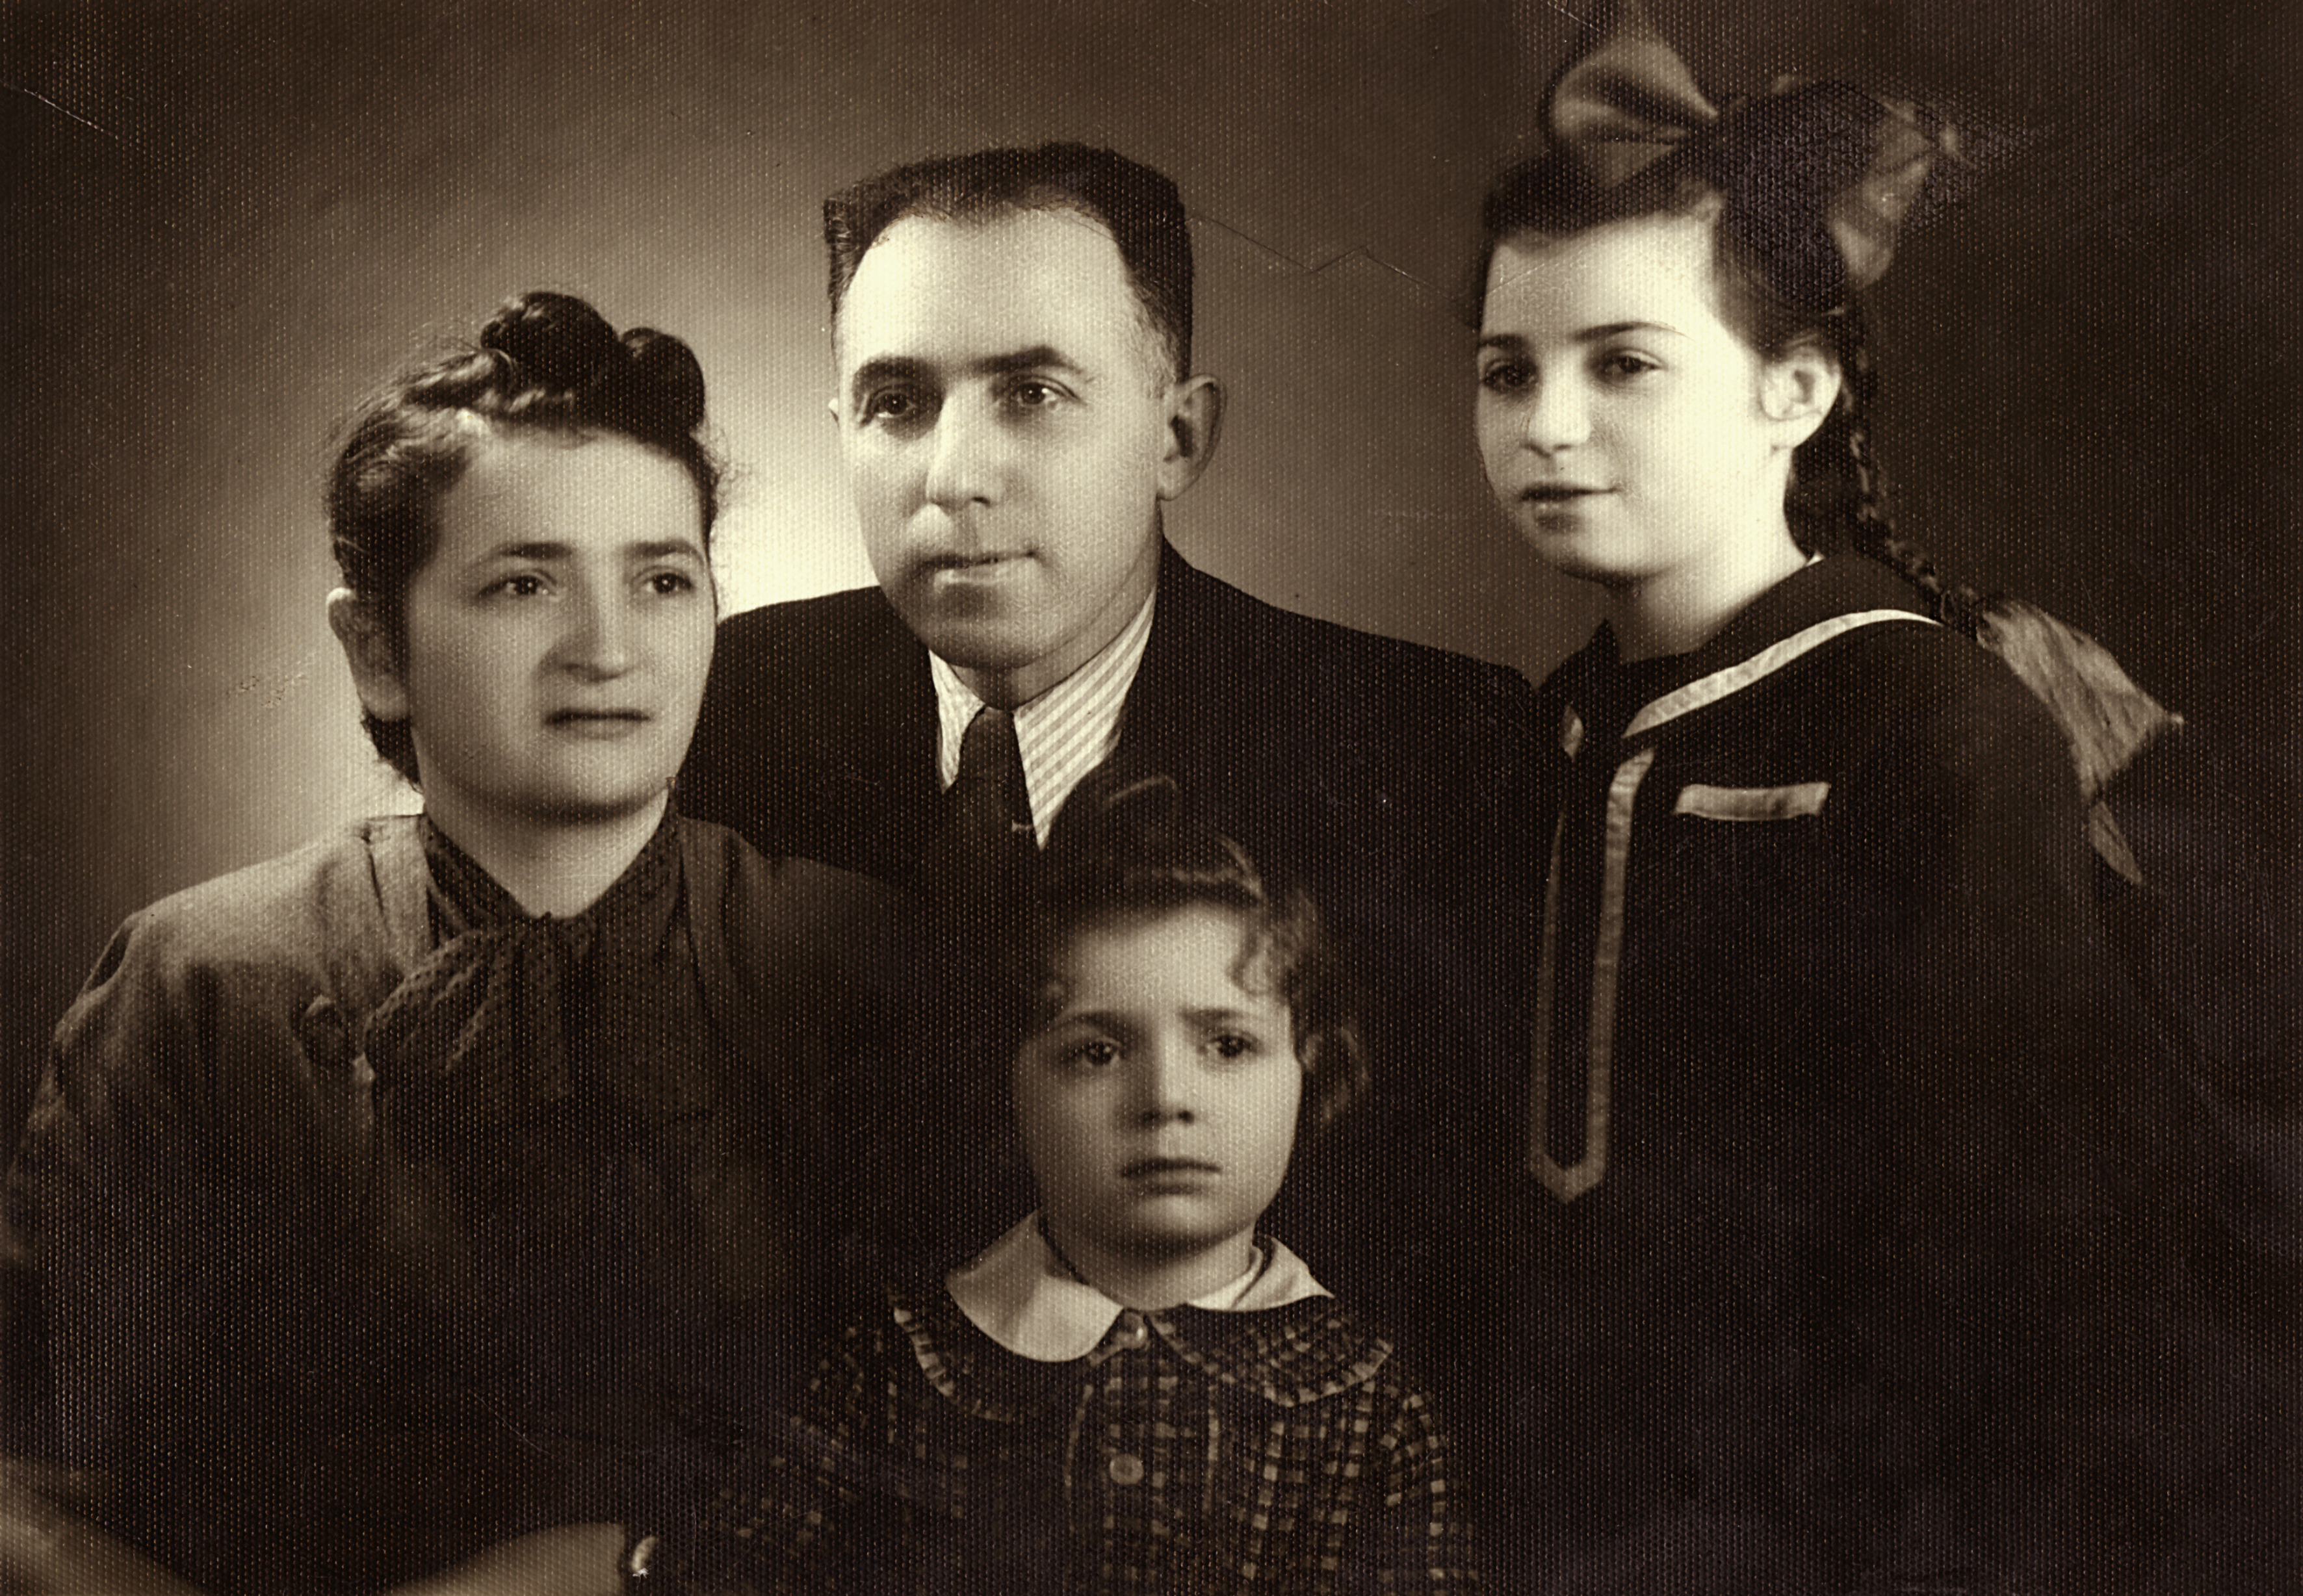 Rozalia Unger with her husband and children